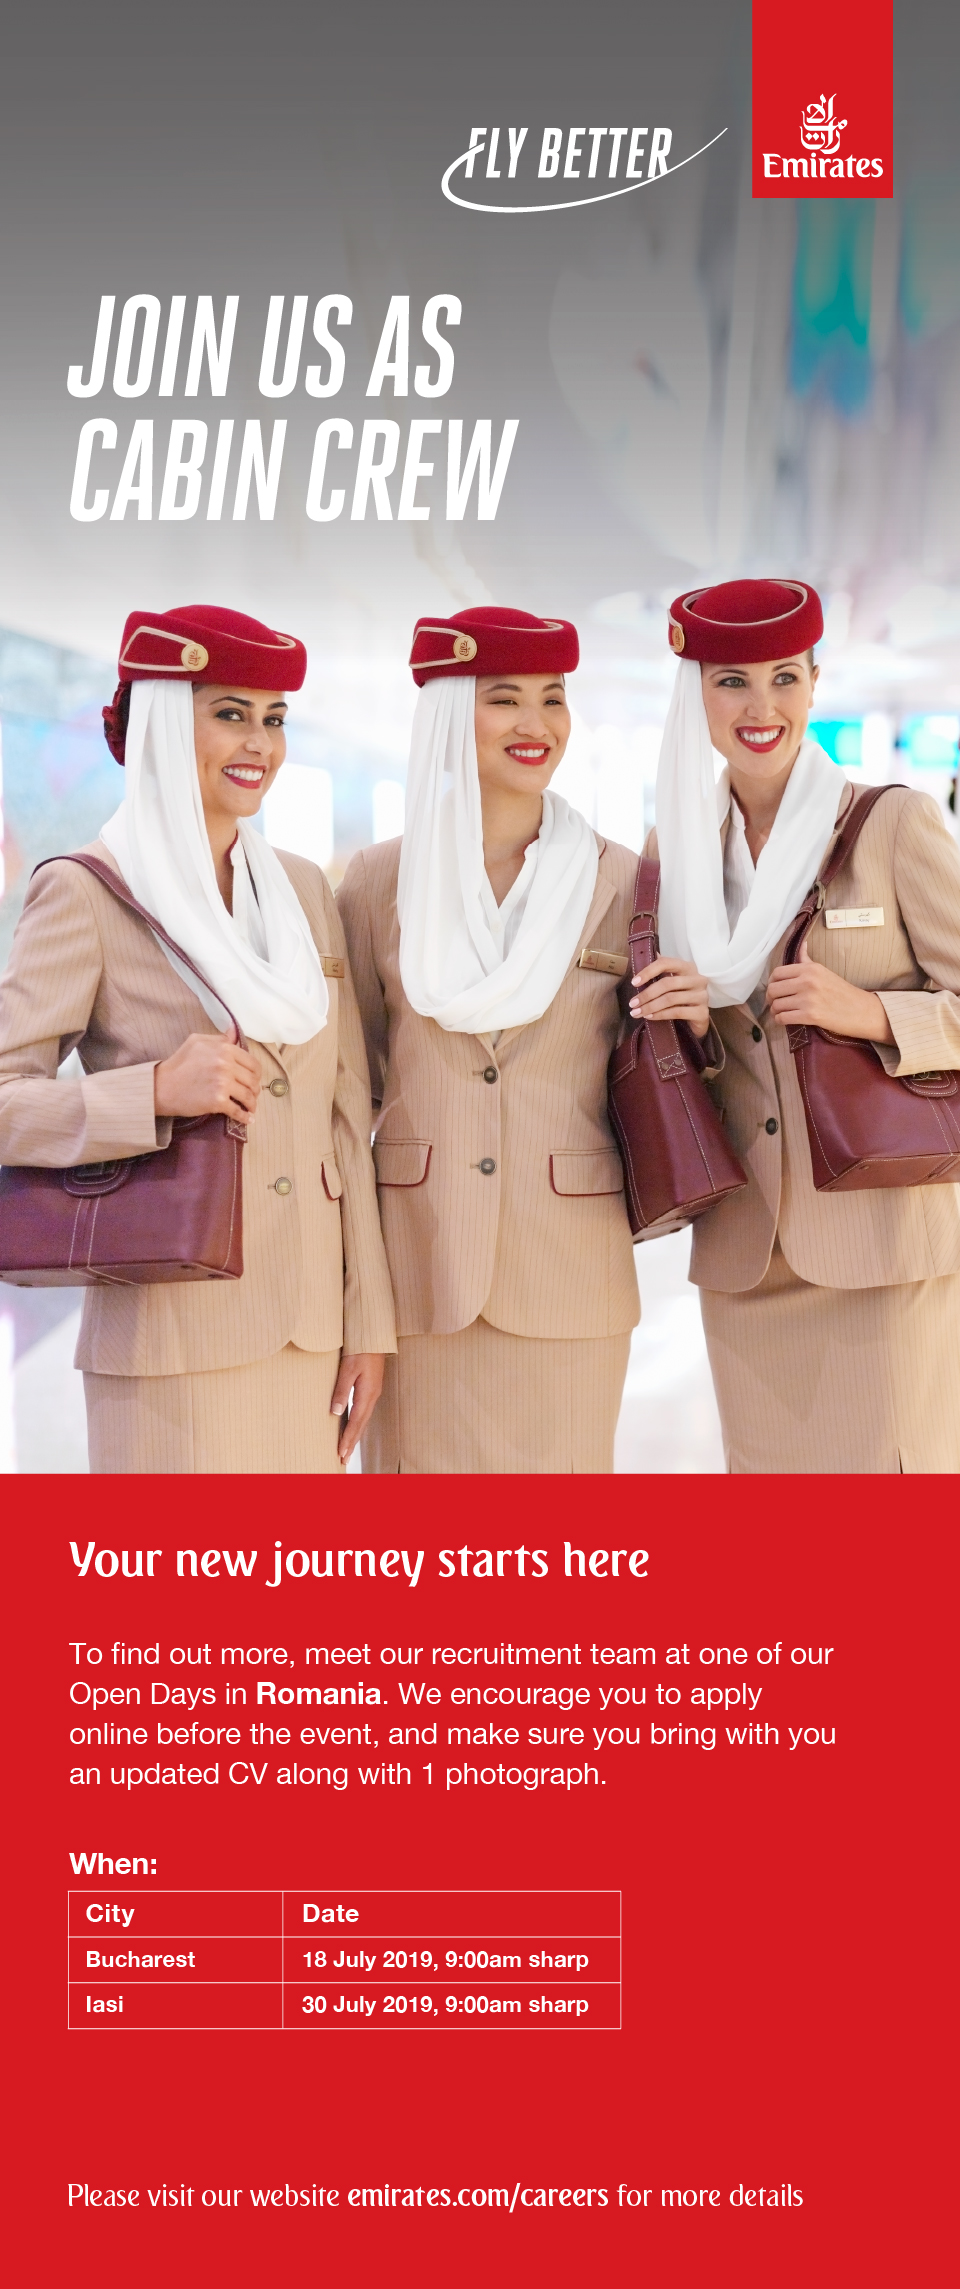 Your new journey starts here